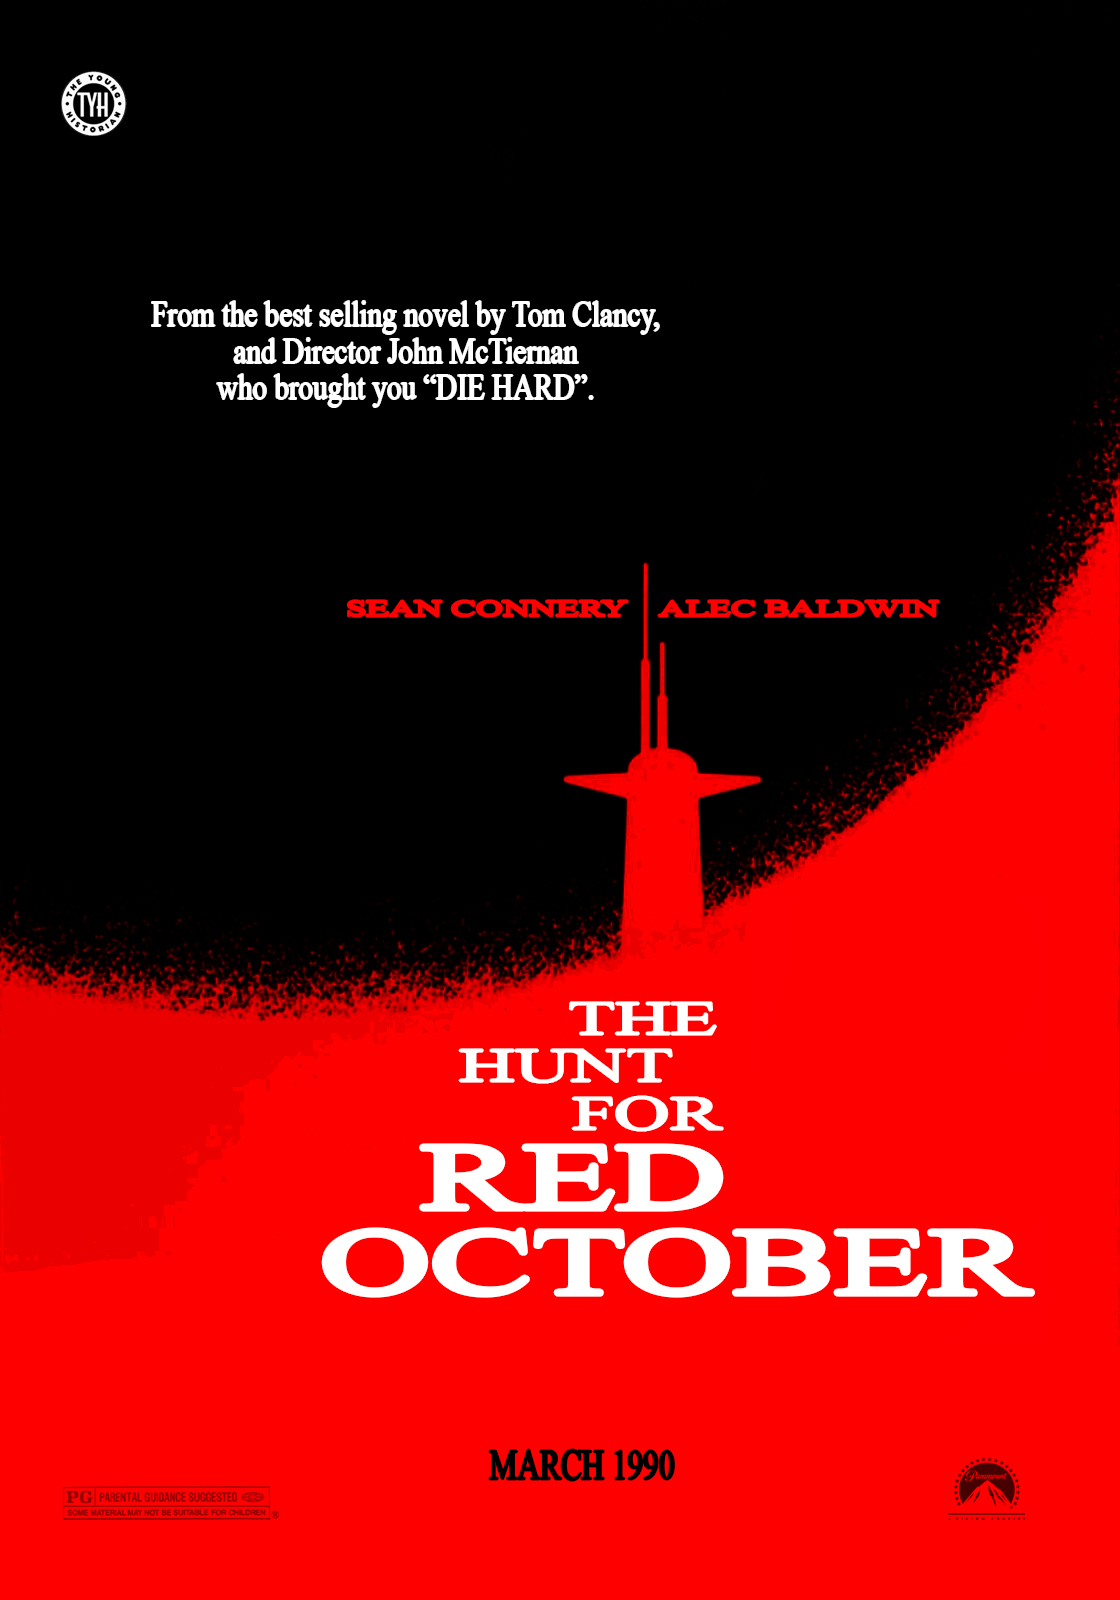 The Hunt For Red October 1990 Teaser By Theyounghistorian On Deviantart